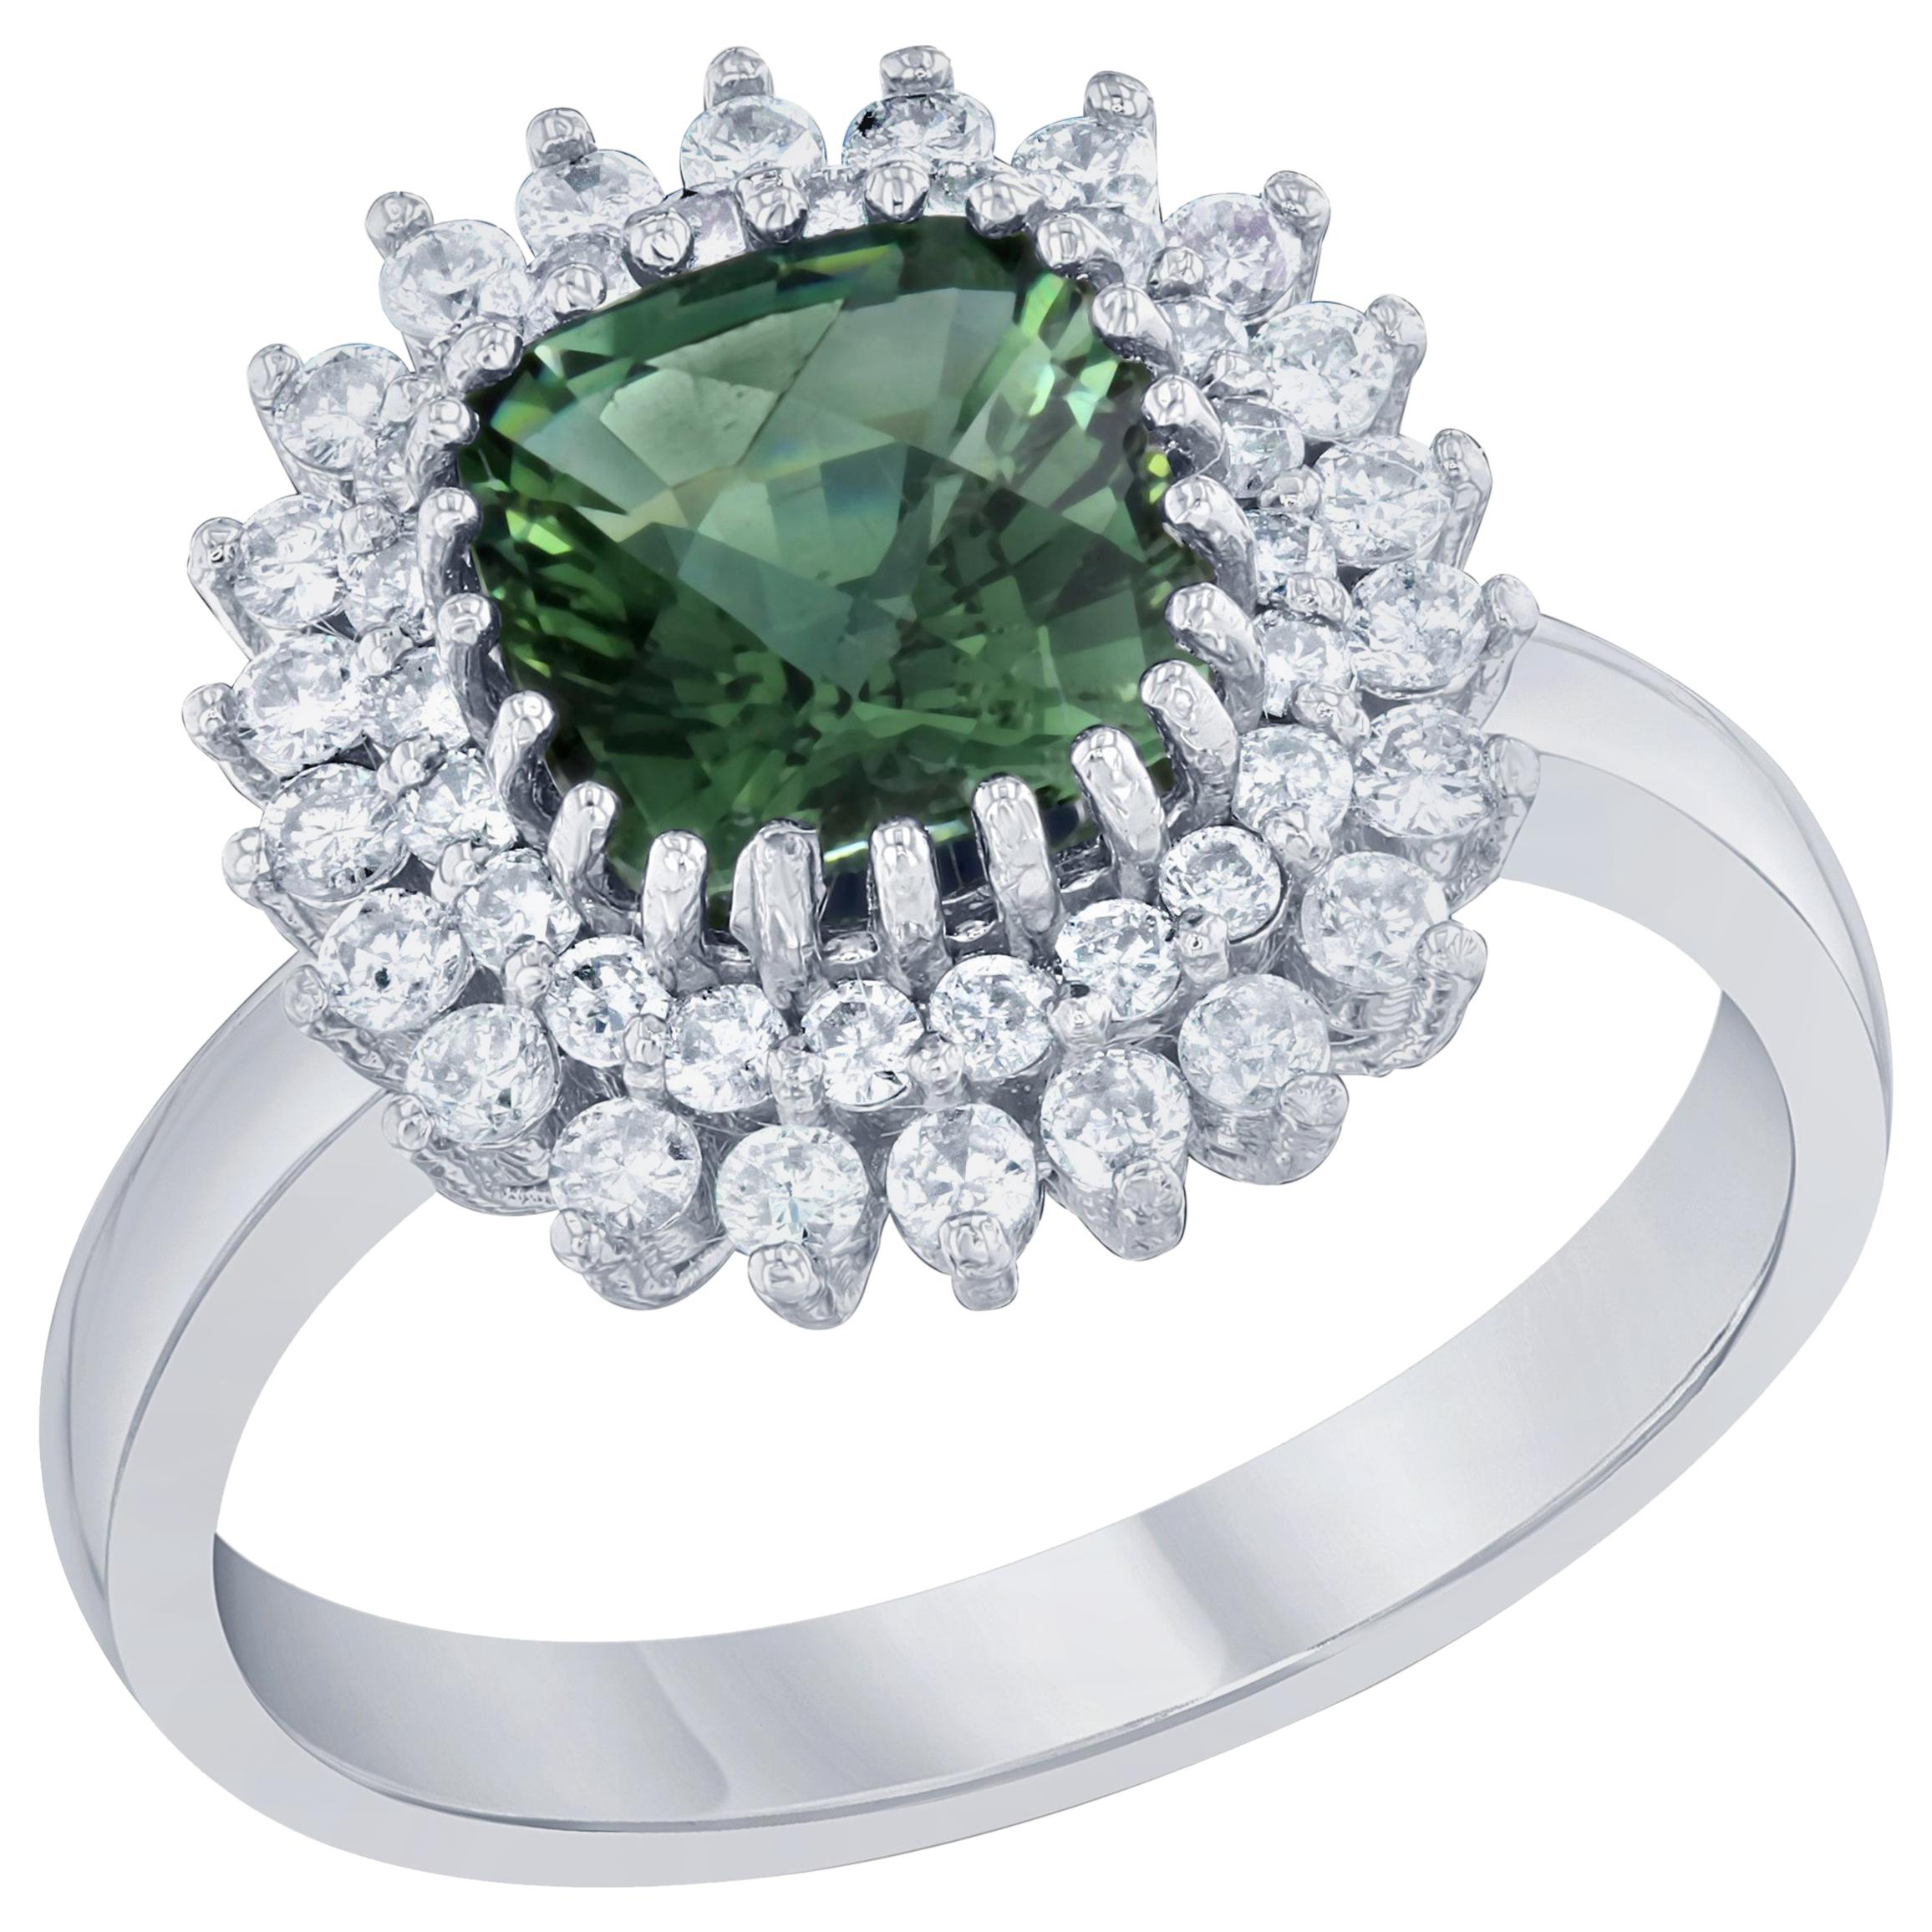 2.21 Carat Green Tourmaline and Diamond Ring 14 Karat White Gold